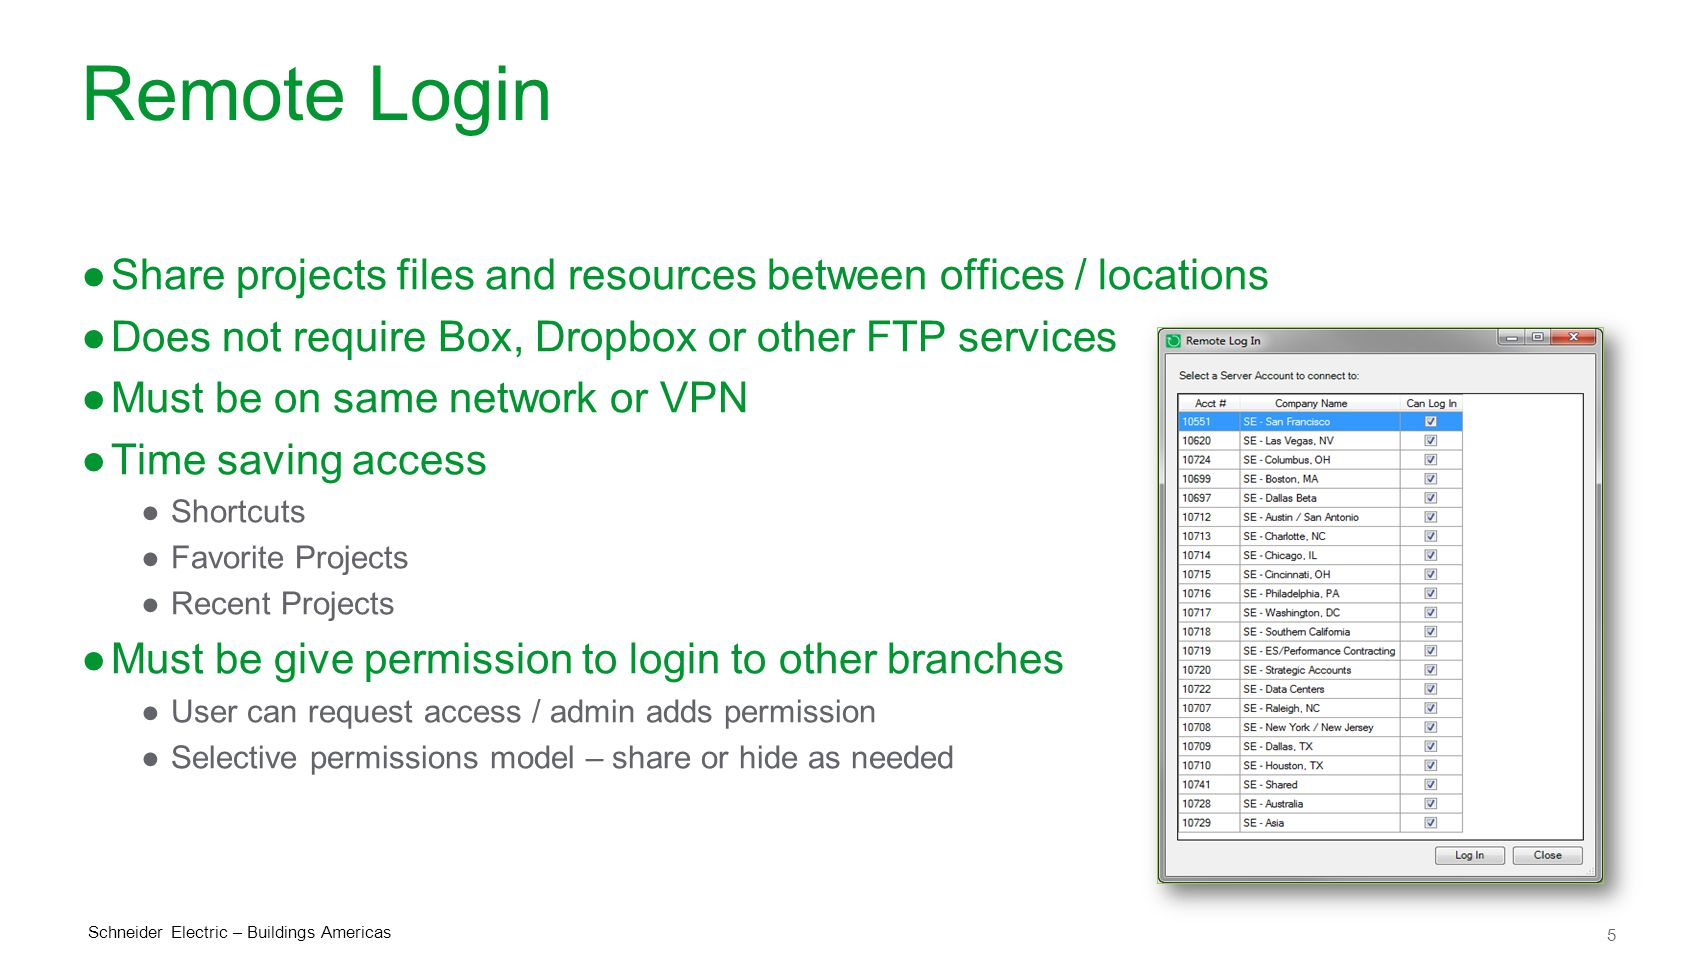 Remote Login Share projects files and resources between offices / locations. Does not require Box, Dropbox or other FTP services.